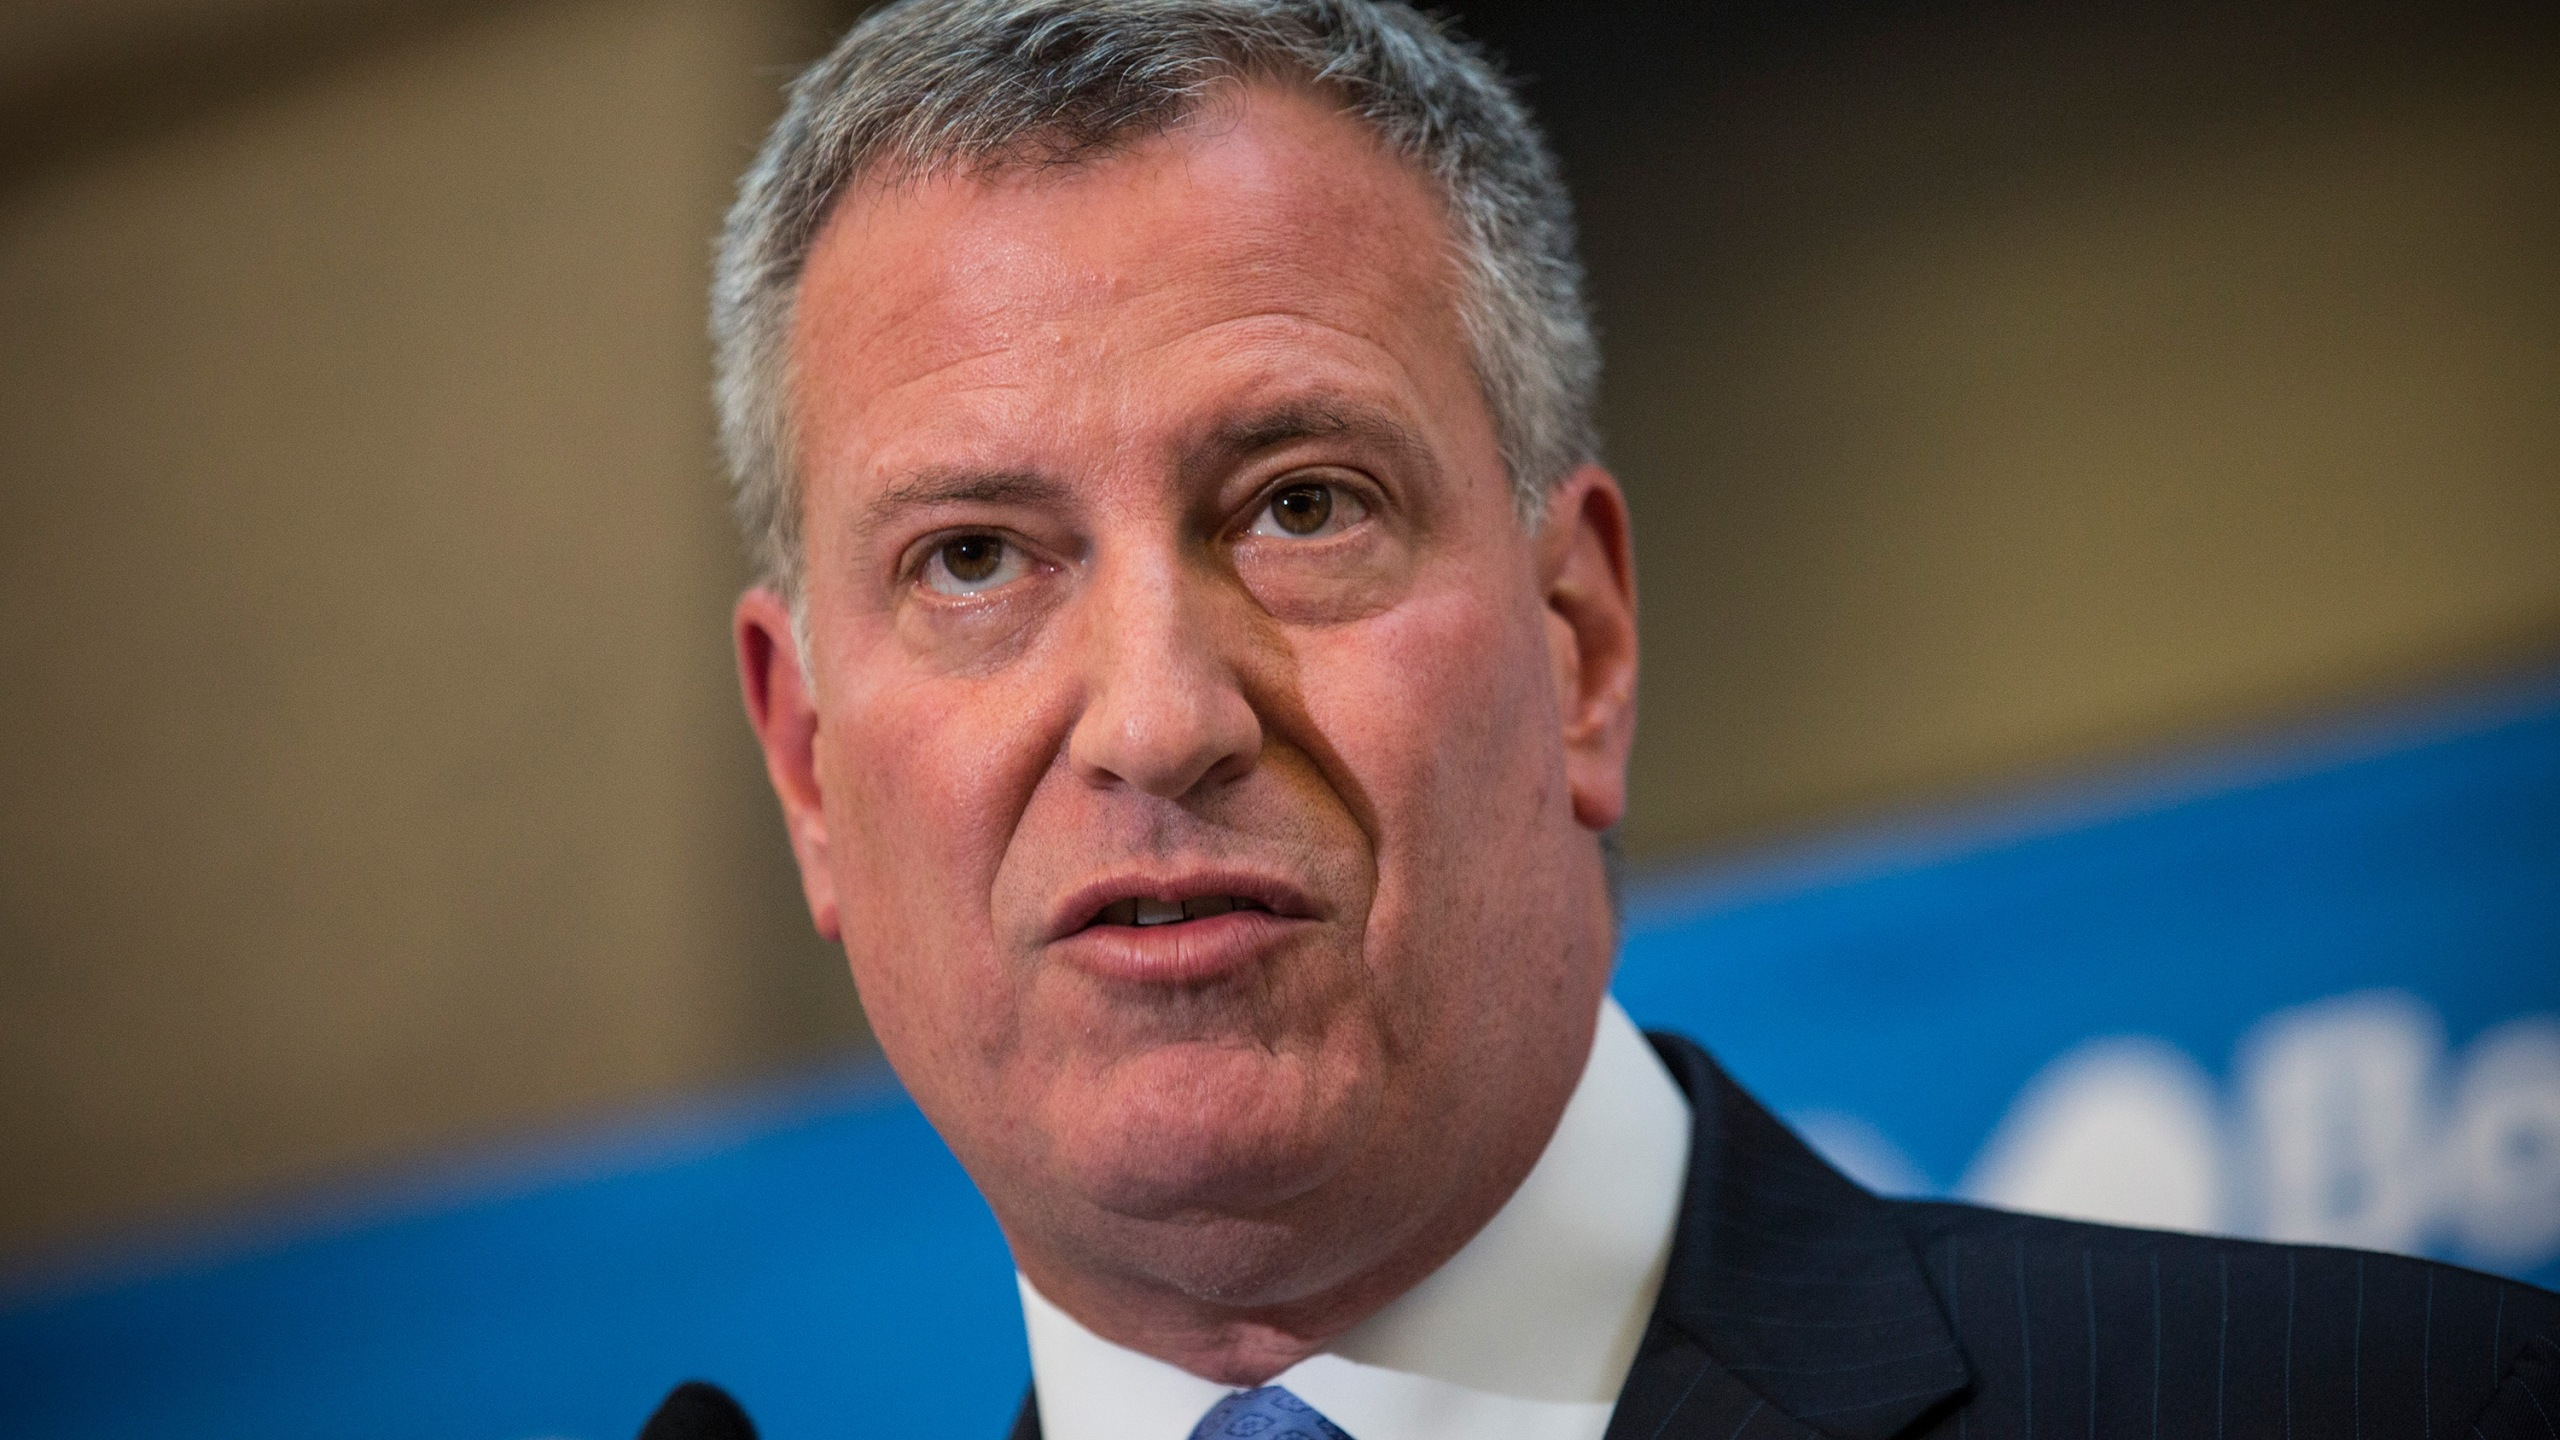 NYC police union wants de Blasio banned fromfunerals